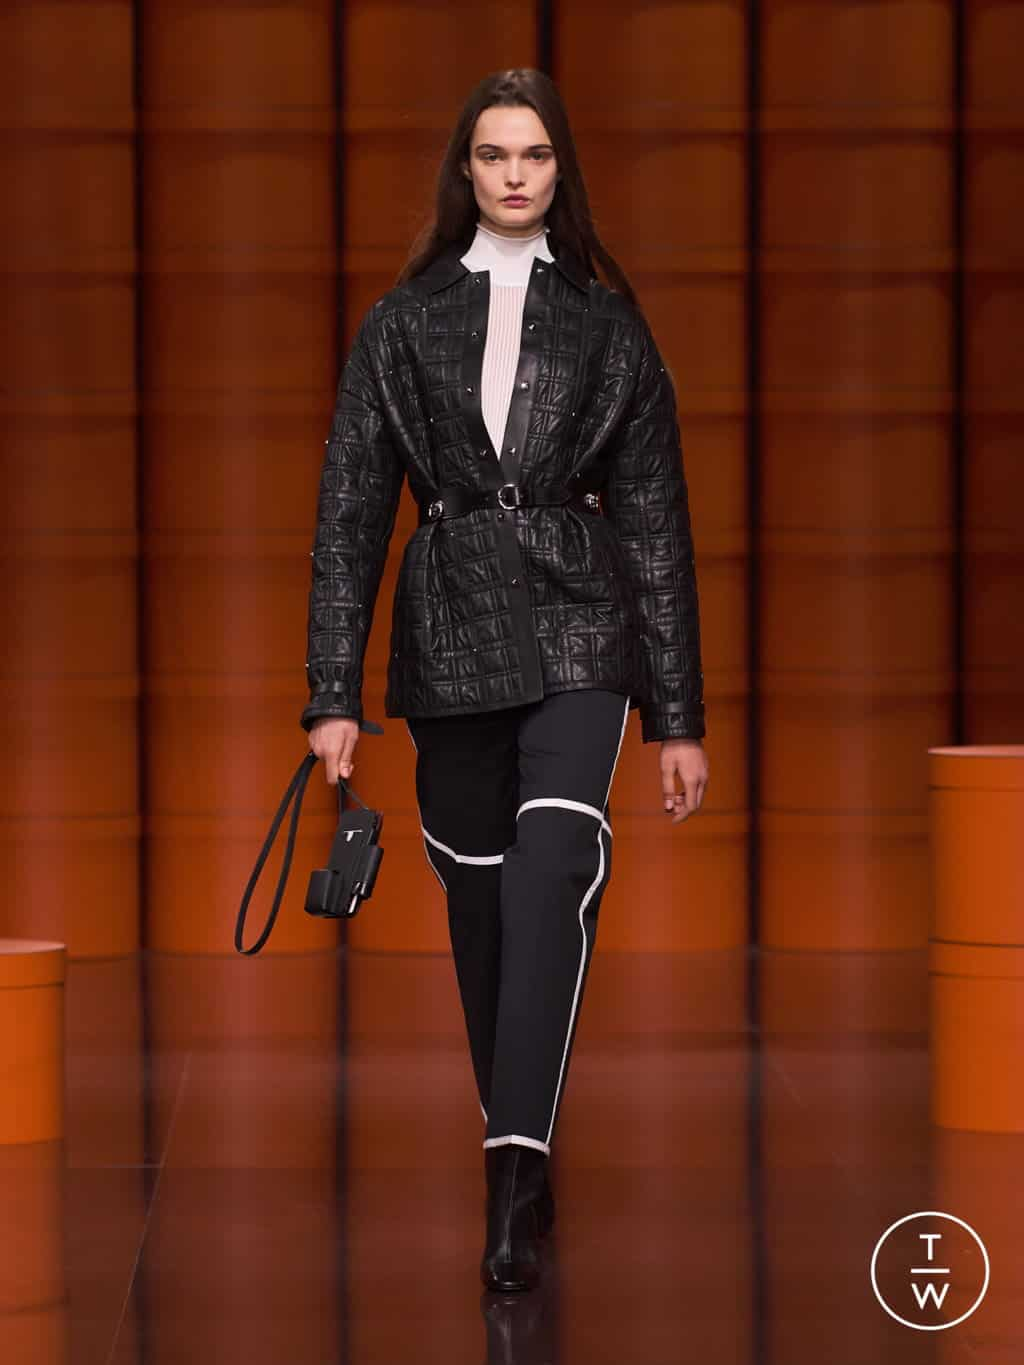 HERMÈS FALL/WINTER 2021 — Look 14